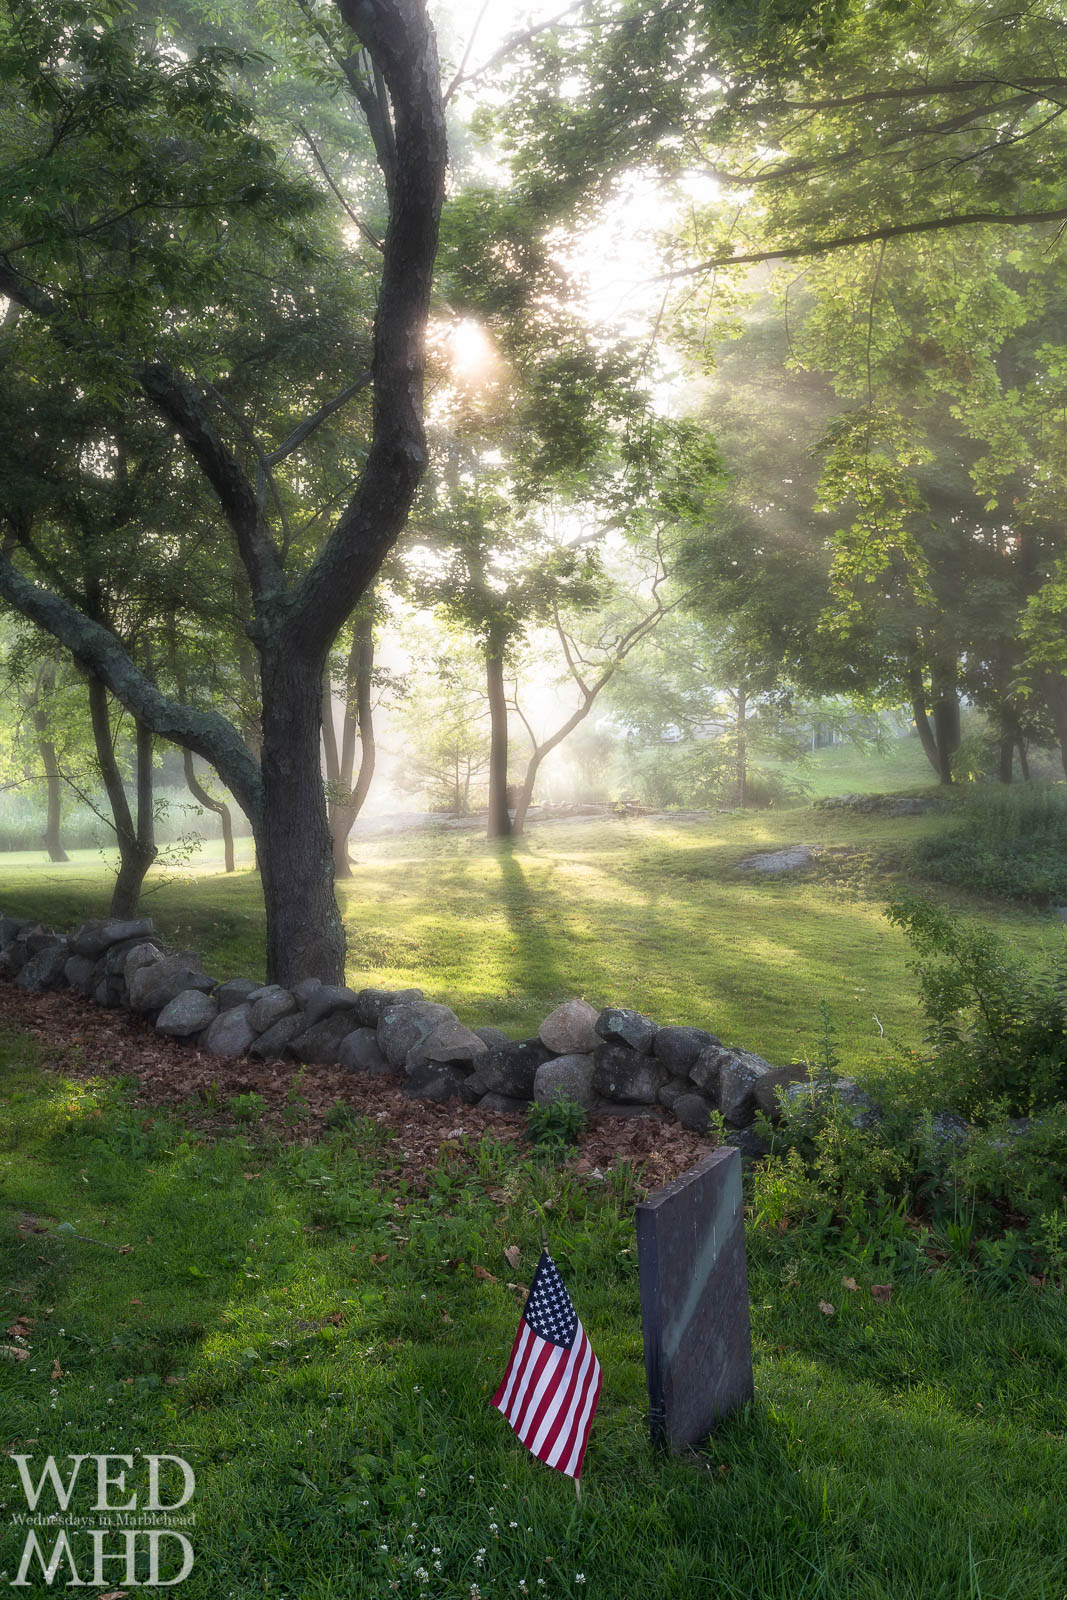 A flag planted near a grave at Old Burial Hill as the sun breaks through fog to light up the trees